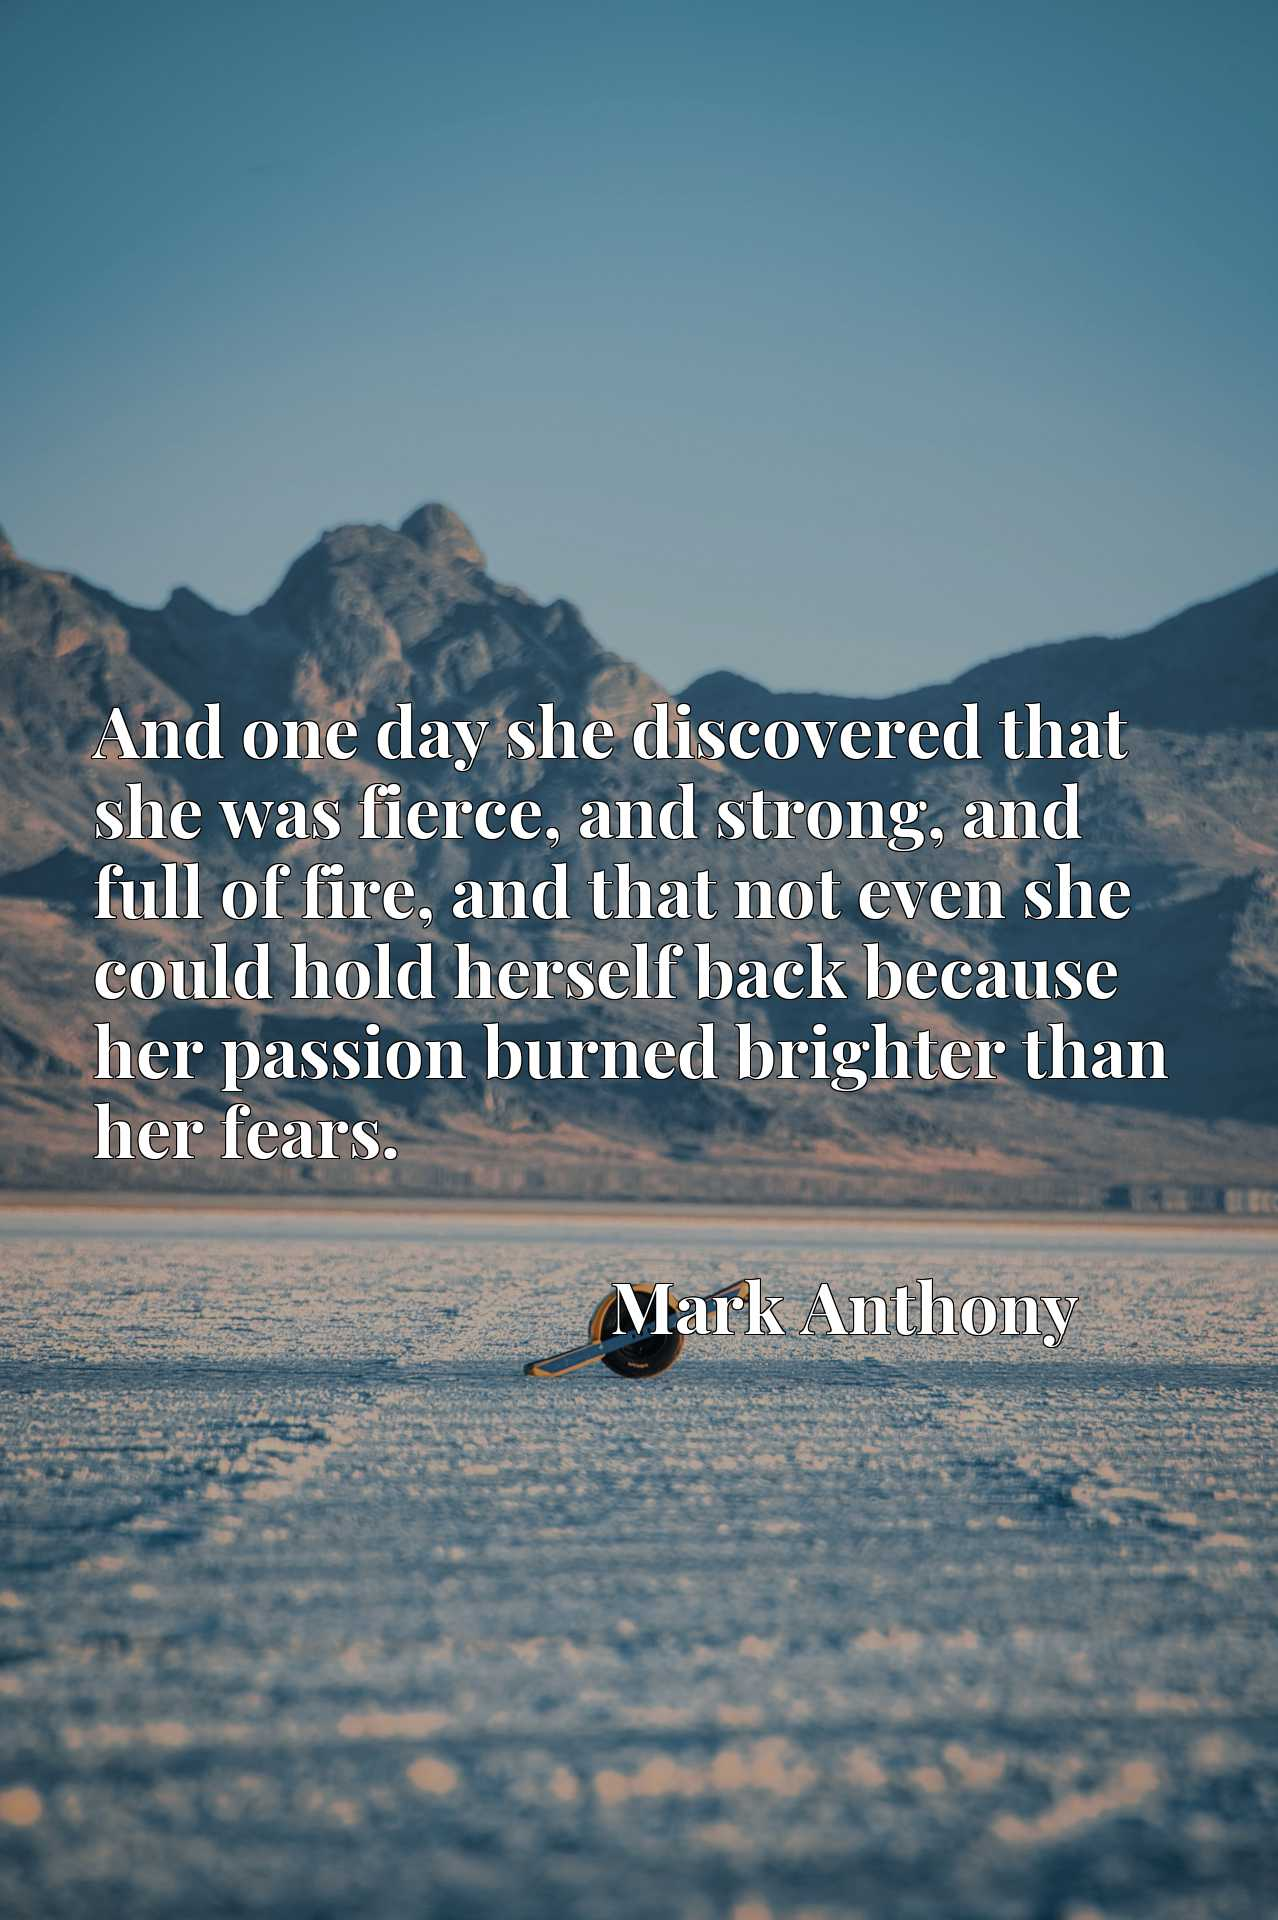 And one day she discovered that she was fierce, and strong, and full of fire, and that not even she could hold herself back because her passion burned brighter than her fears.